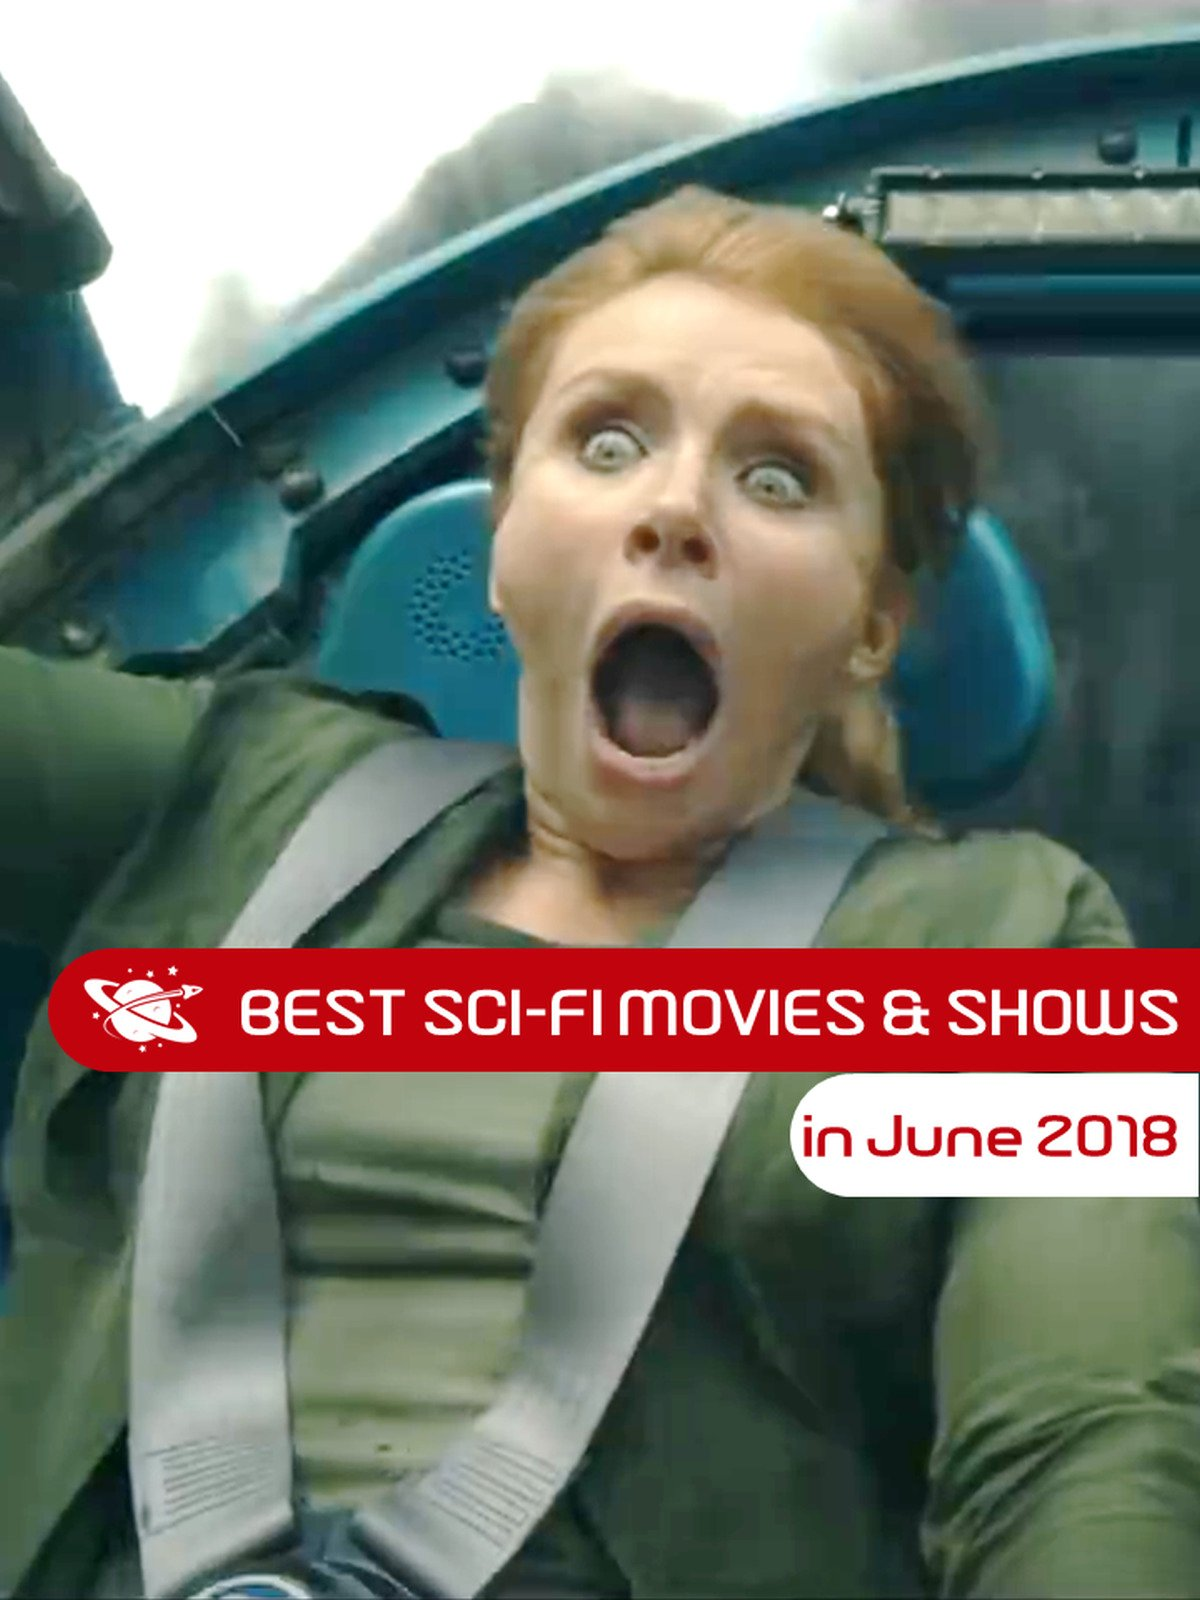 Best Sci-Fi Movies & Shows in June 2018